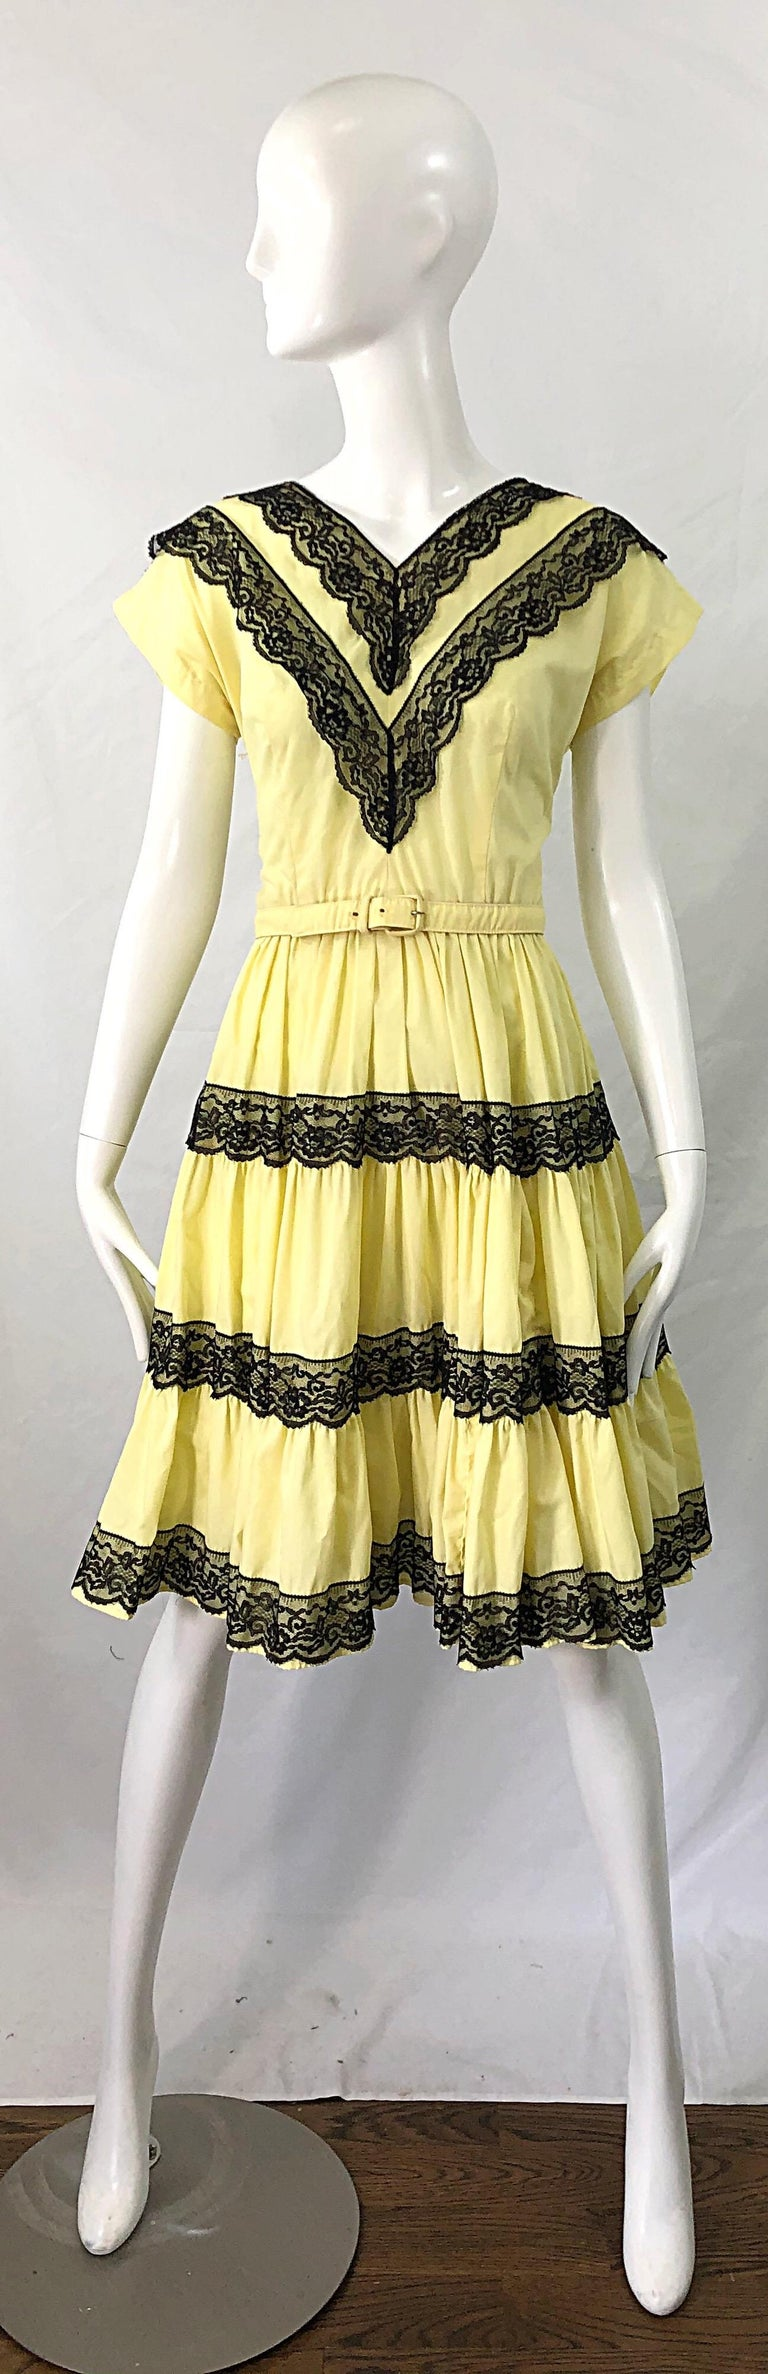 1950s Bettina of Miami Yellow + Black Cotton Lace Fit n' Flare Vintage 50s Dress For Sale 8